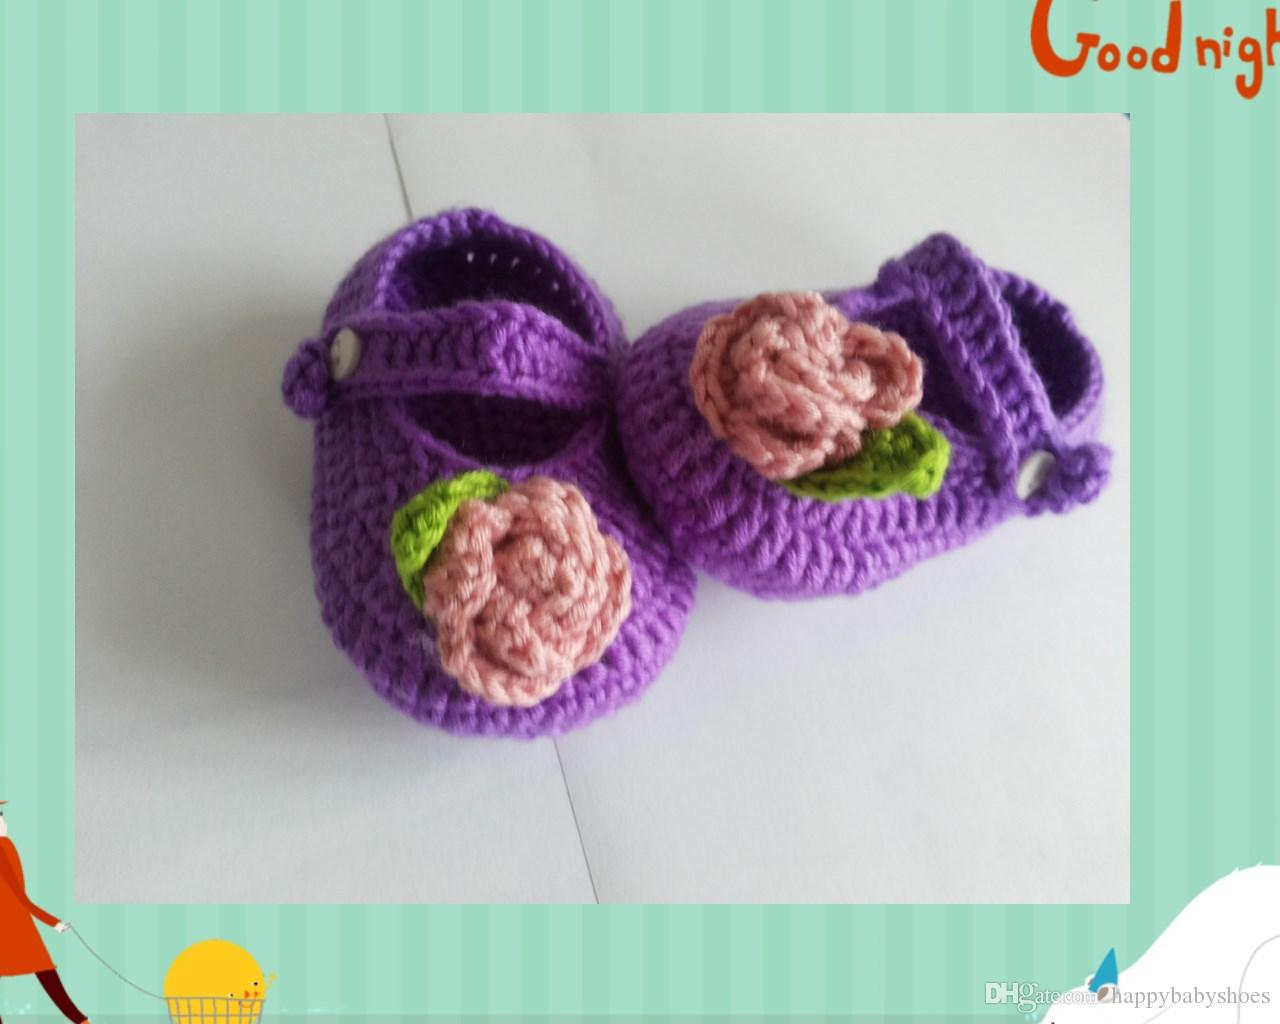 Baby crochet shoes baby boys booties infant 100% handmad first walker shoes kids knit purple sandals toddler shoes 0-12M customize